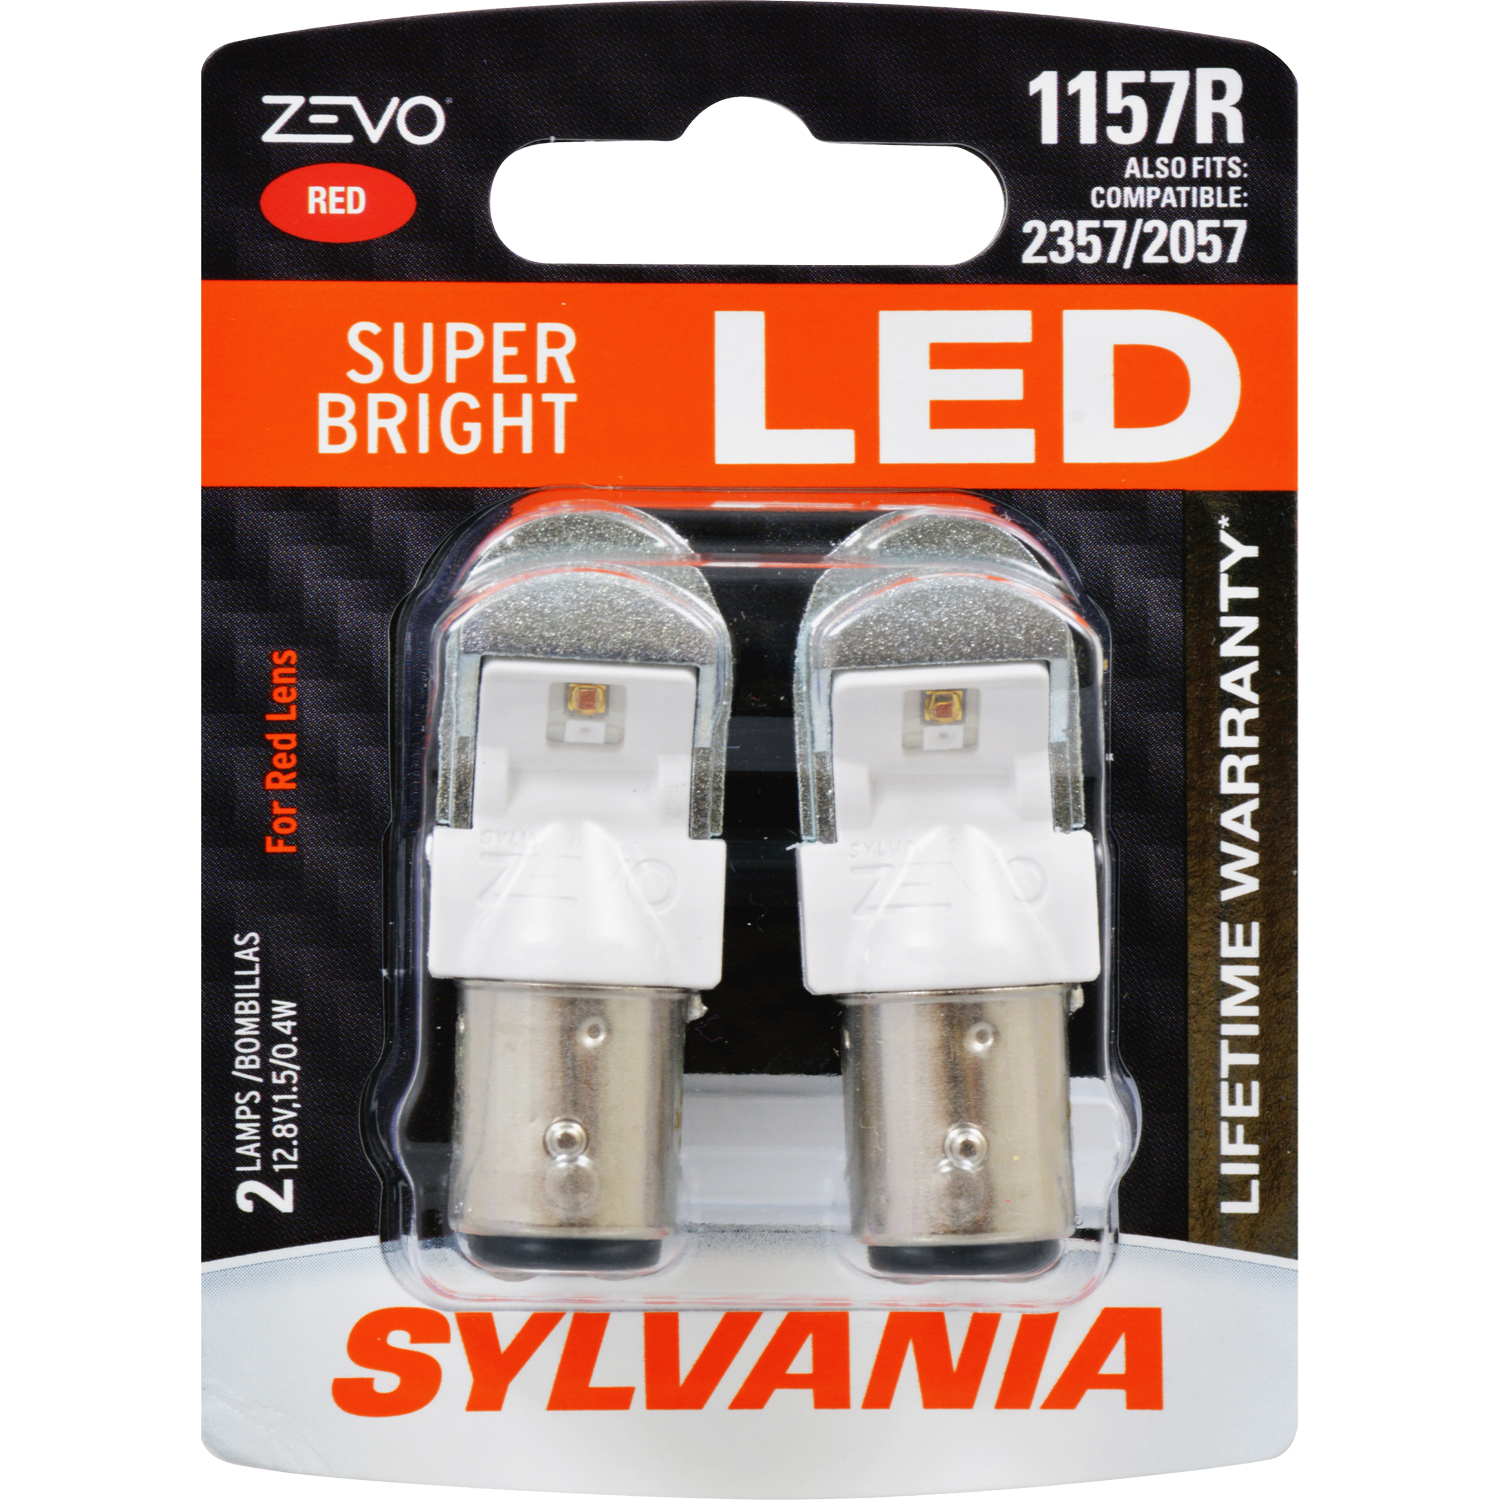 SYLVANIA 1157R RED ZEVO LED Mini, Pack of 2